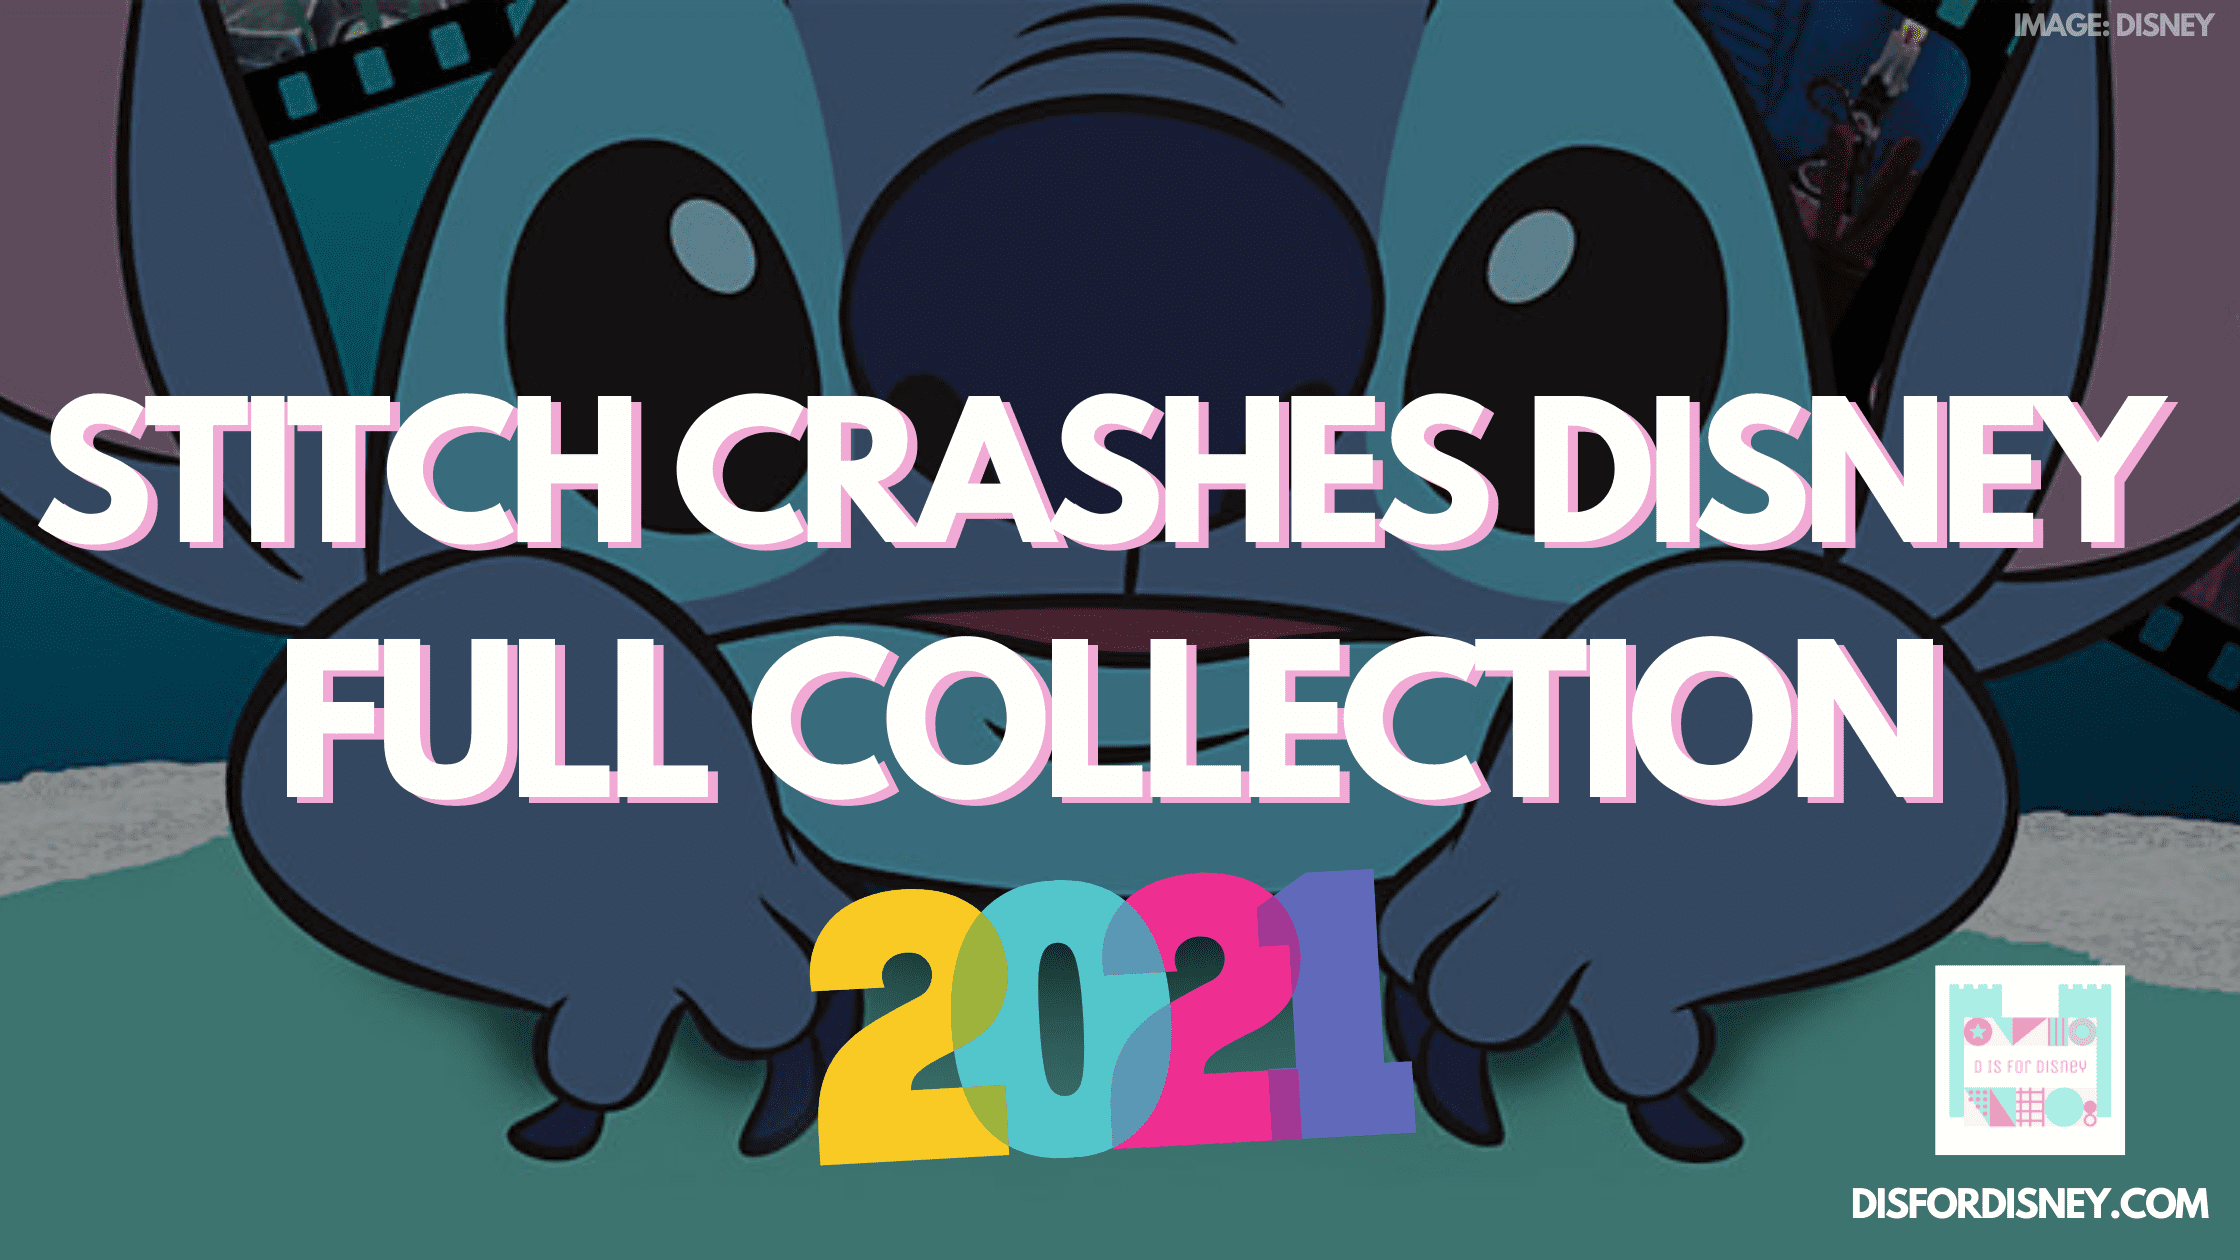 Stitch Crashes Disney Full Collection